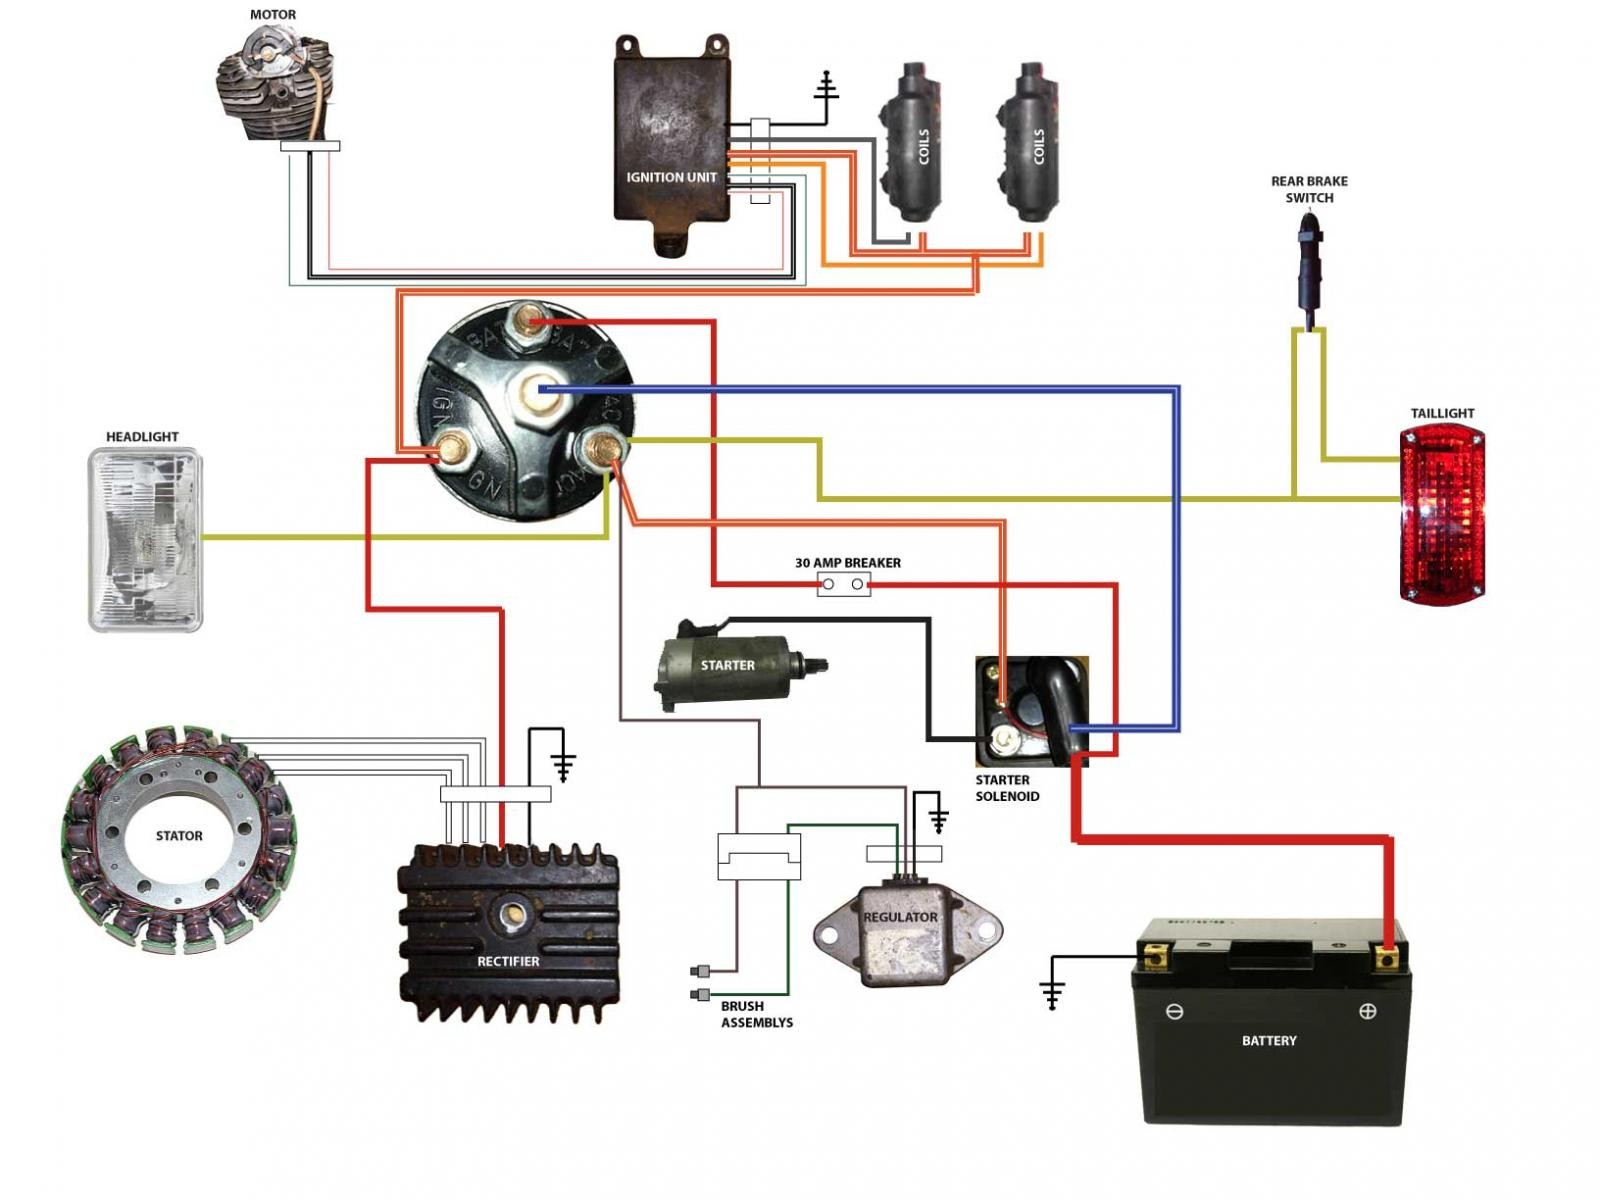 Cb750 Sohc Diagrams Cafe My Bike T Diagram Honda Motorcycle Gl1500 Wiring Bobber Trusted Ignition 1980 Wire Coil